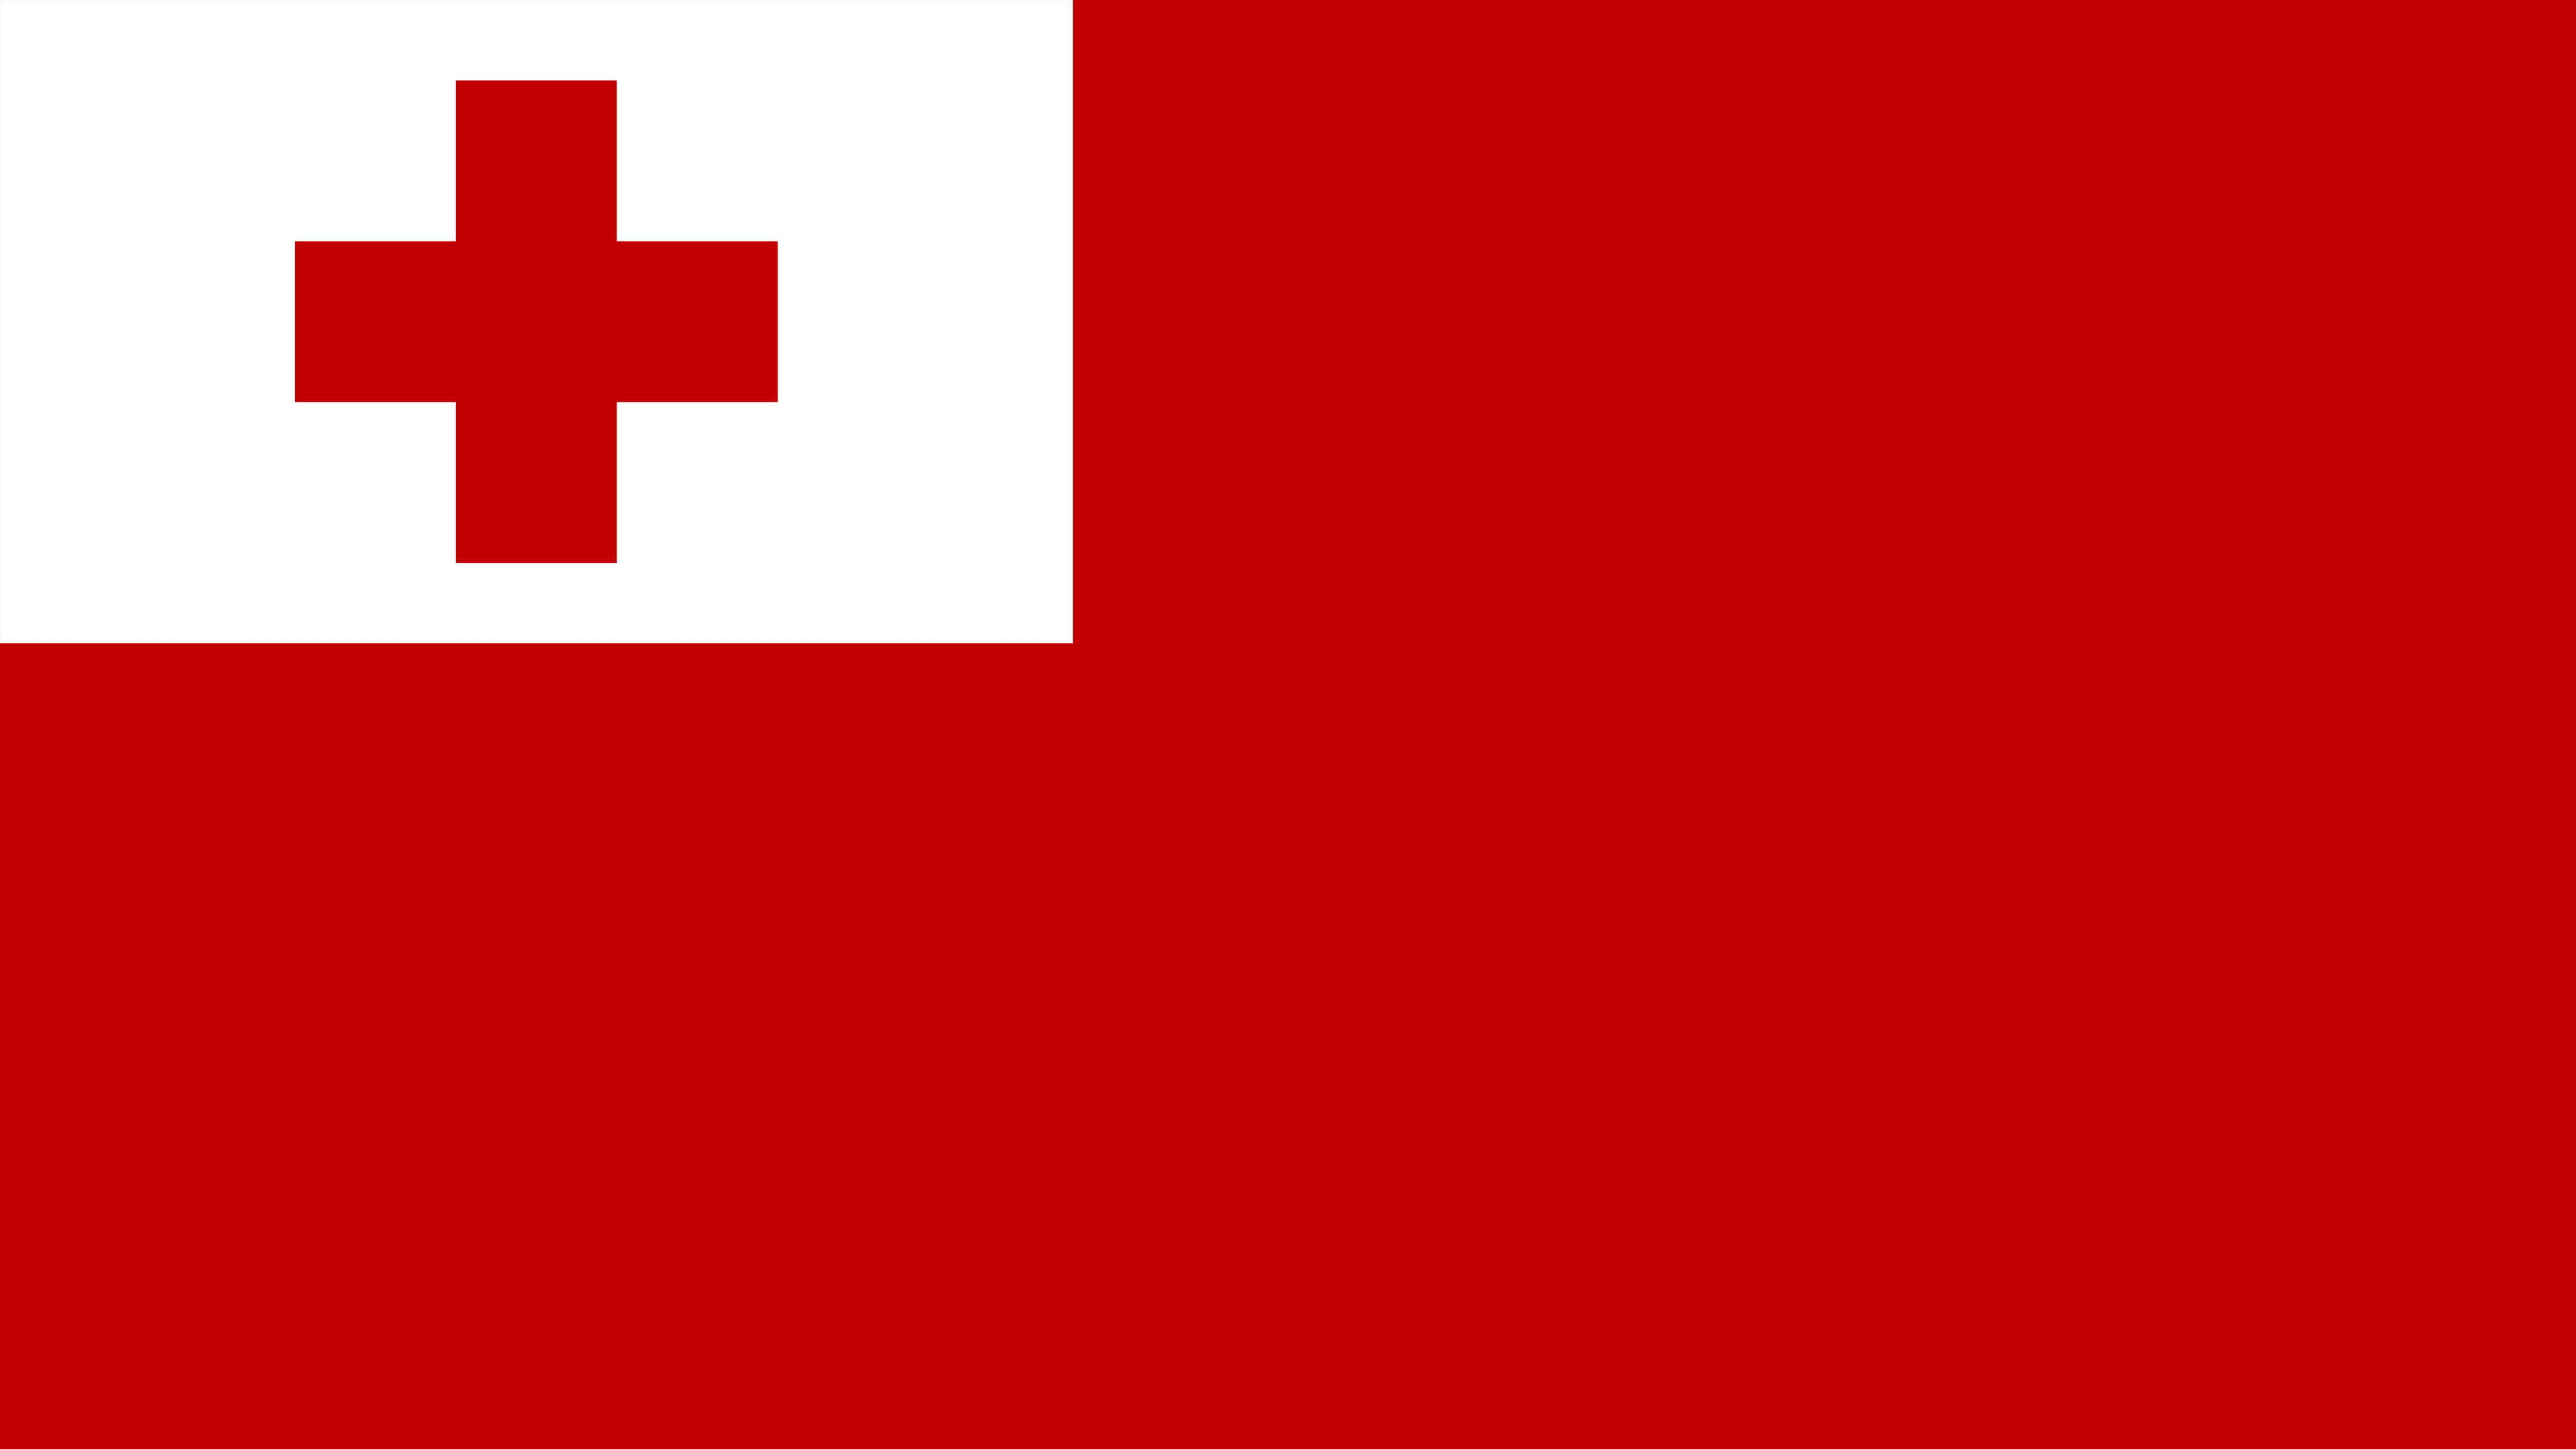 tonga flag uhd 4k wallpaper